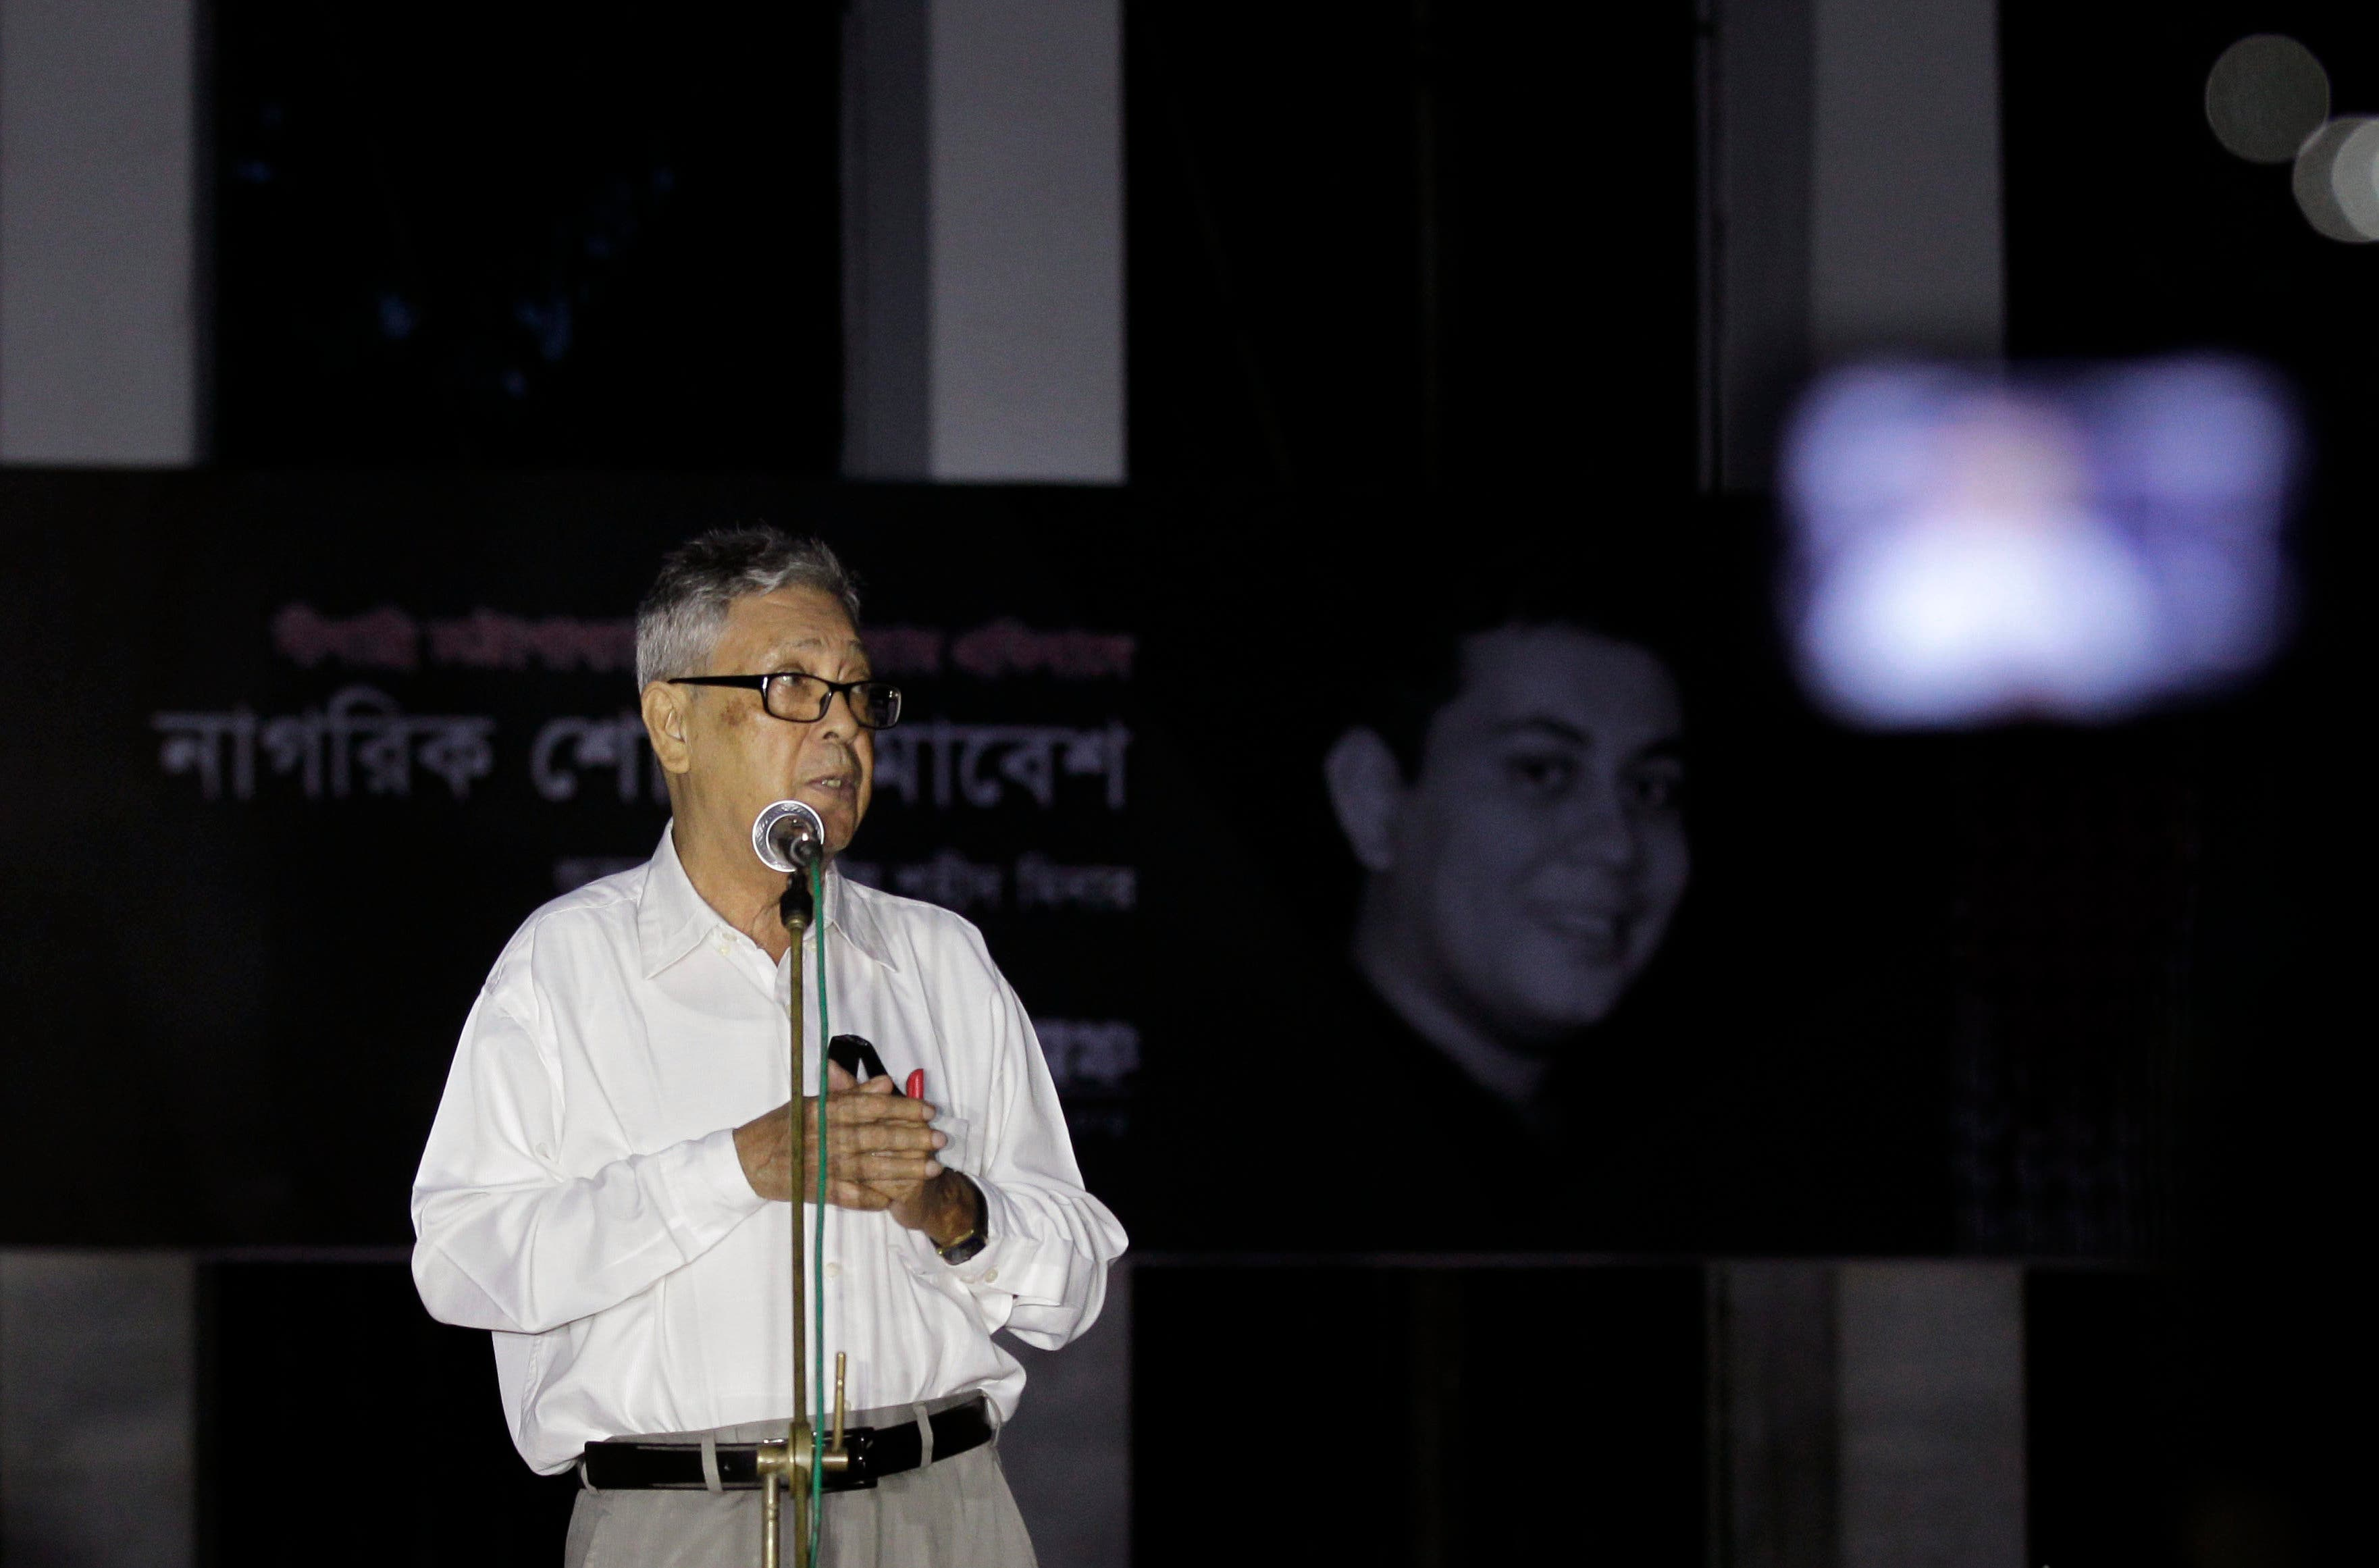 Ajay Roy, father of a prominent Bangladeshi-American blogger Avijit Roy, who was hacked to death on the streets of Bangladesh's capital, gives a speech during a protest against the killing of secular blogger Niladri Chottopadhay Niloy in Dhaka, Bangladesh, Friday, Aug. 14, 2015. Two suspected members of a Bangladeshi Muslim militant group, including one who was out on bail on a charge of attempted murder, were arrested in the killing of the secular blogger in the fourth such deadly attack this year. (AP Photo/A.M. Ahad)